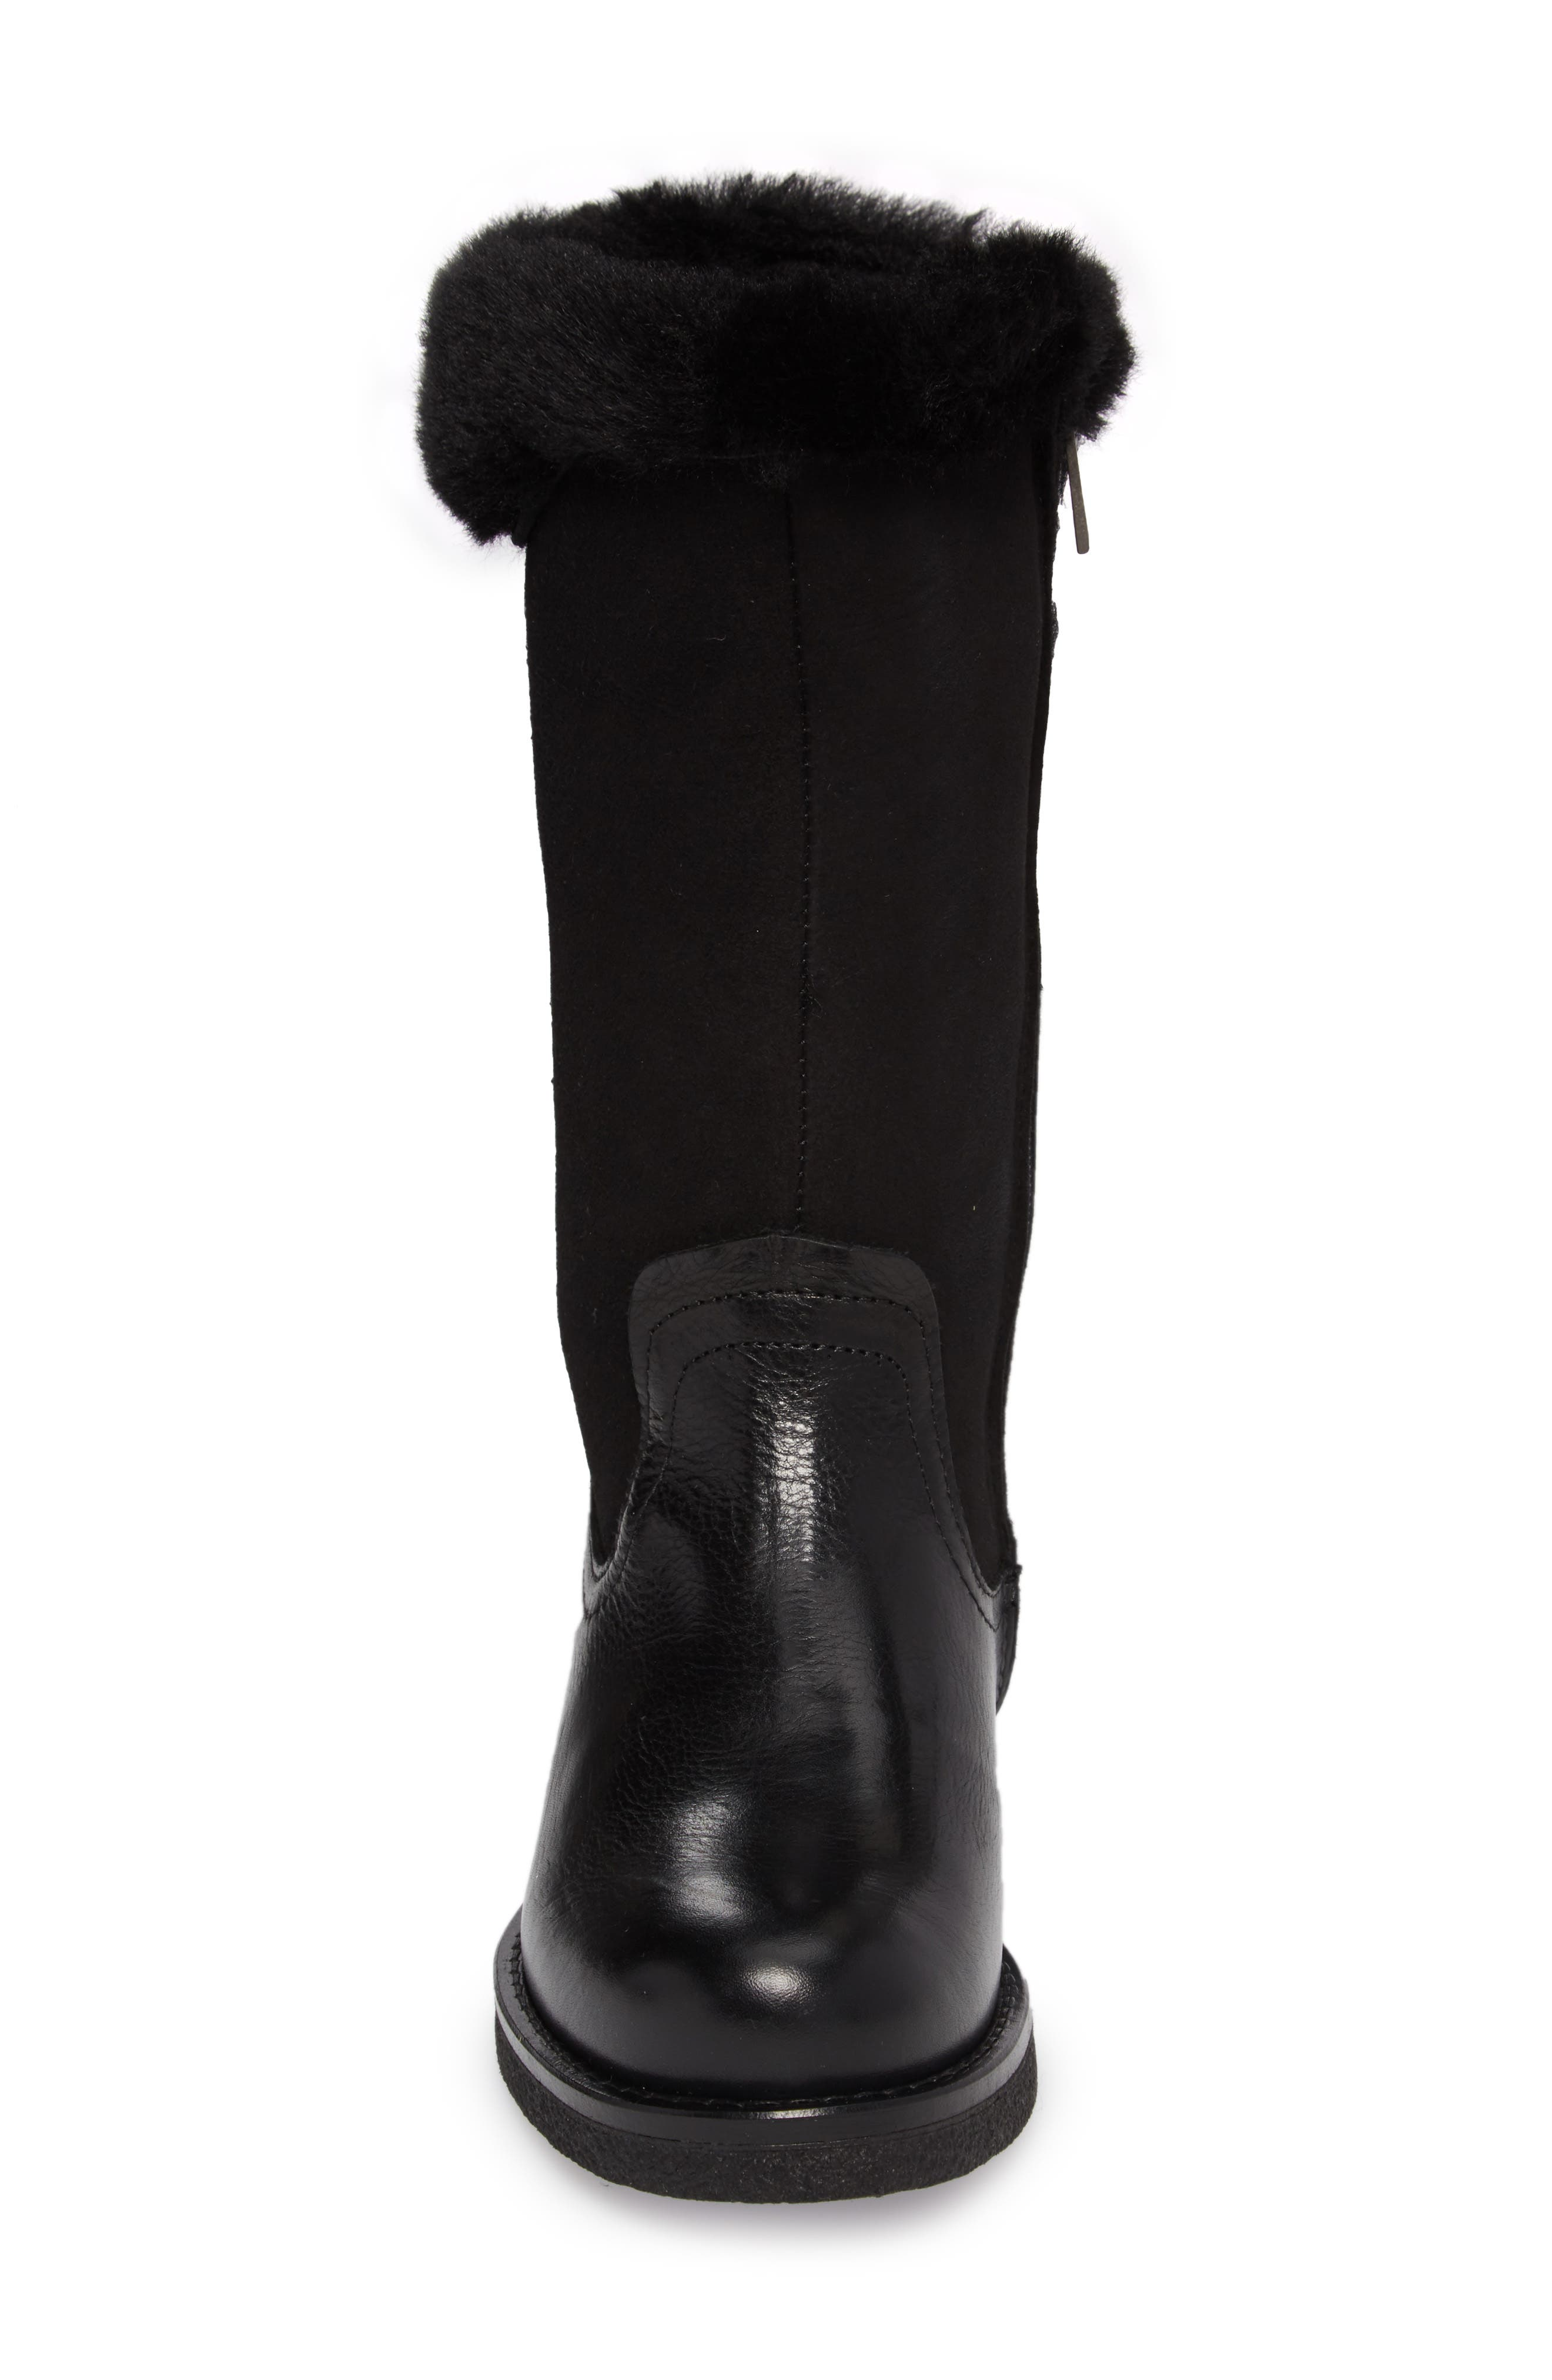 Amarillo Waterproof Insulated Snow Boot,                             Alternate thumbnail 4, color,                             001